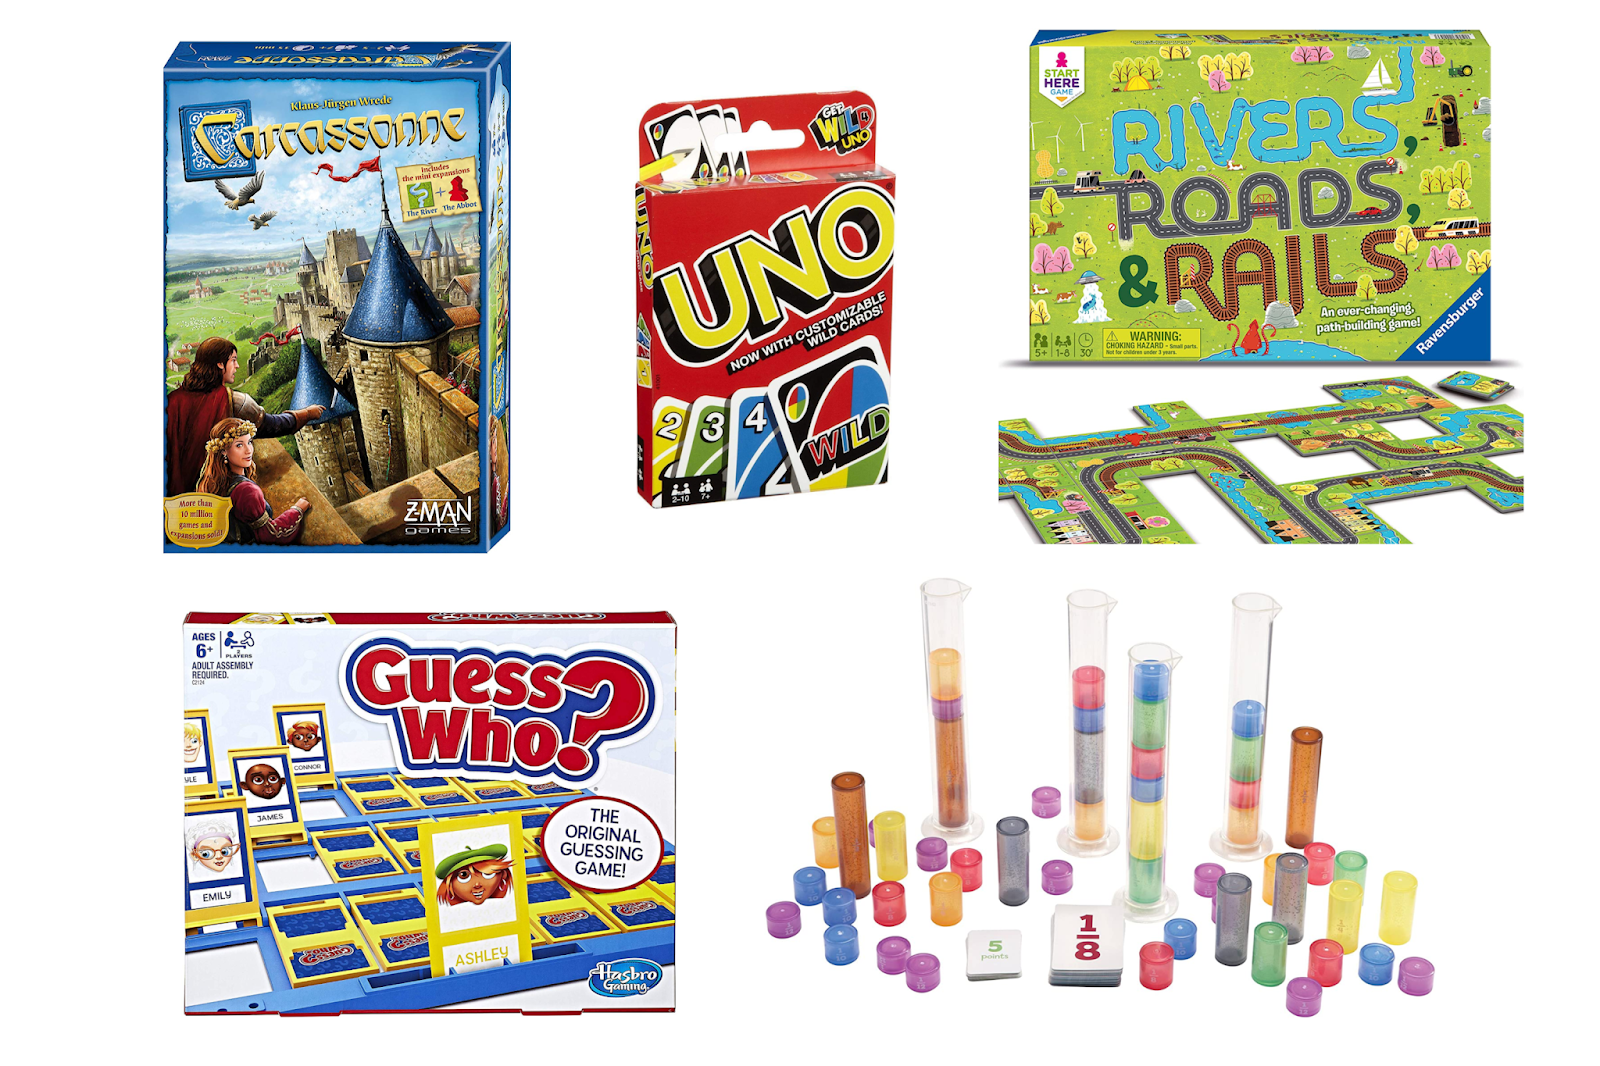 Here's a look at some games we use in our Montessori home with older kids. These fun activities keep kids busy and engaged.